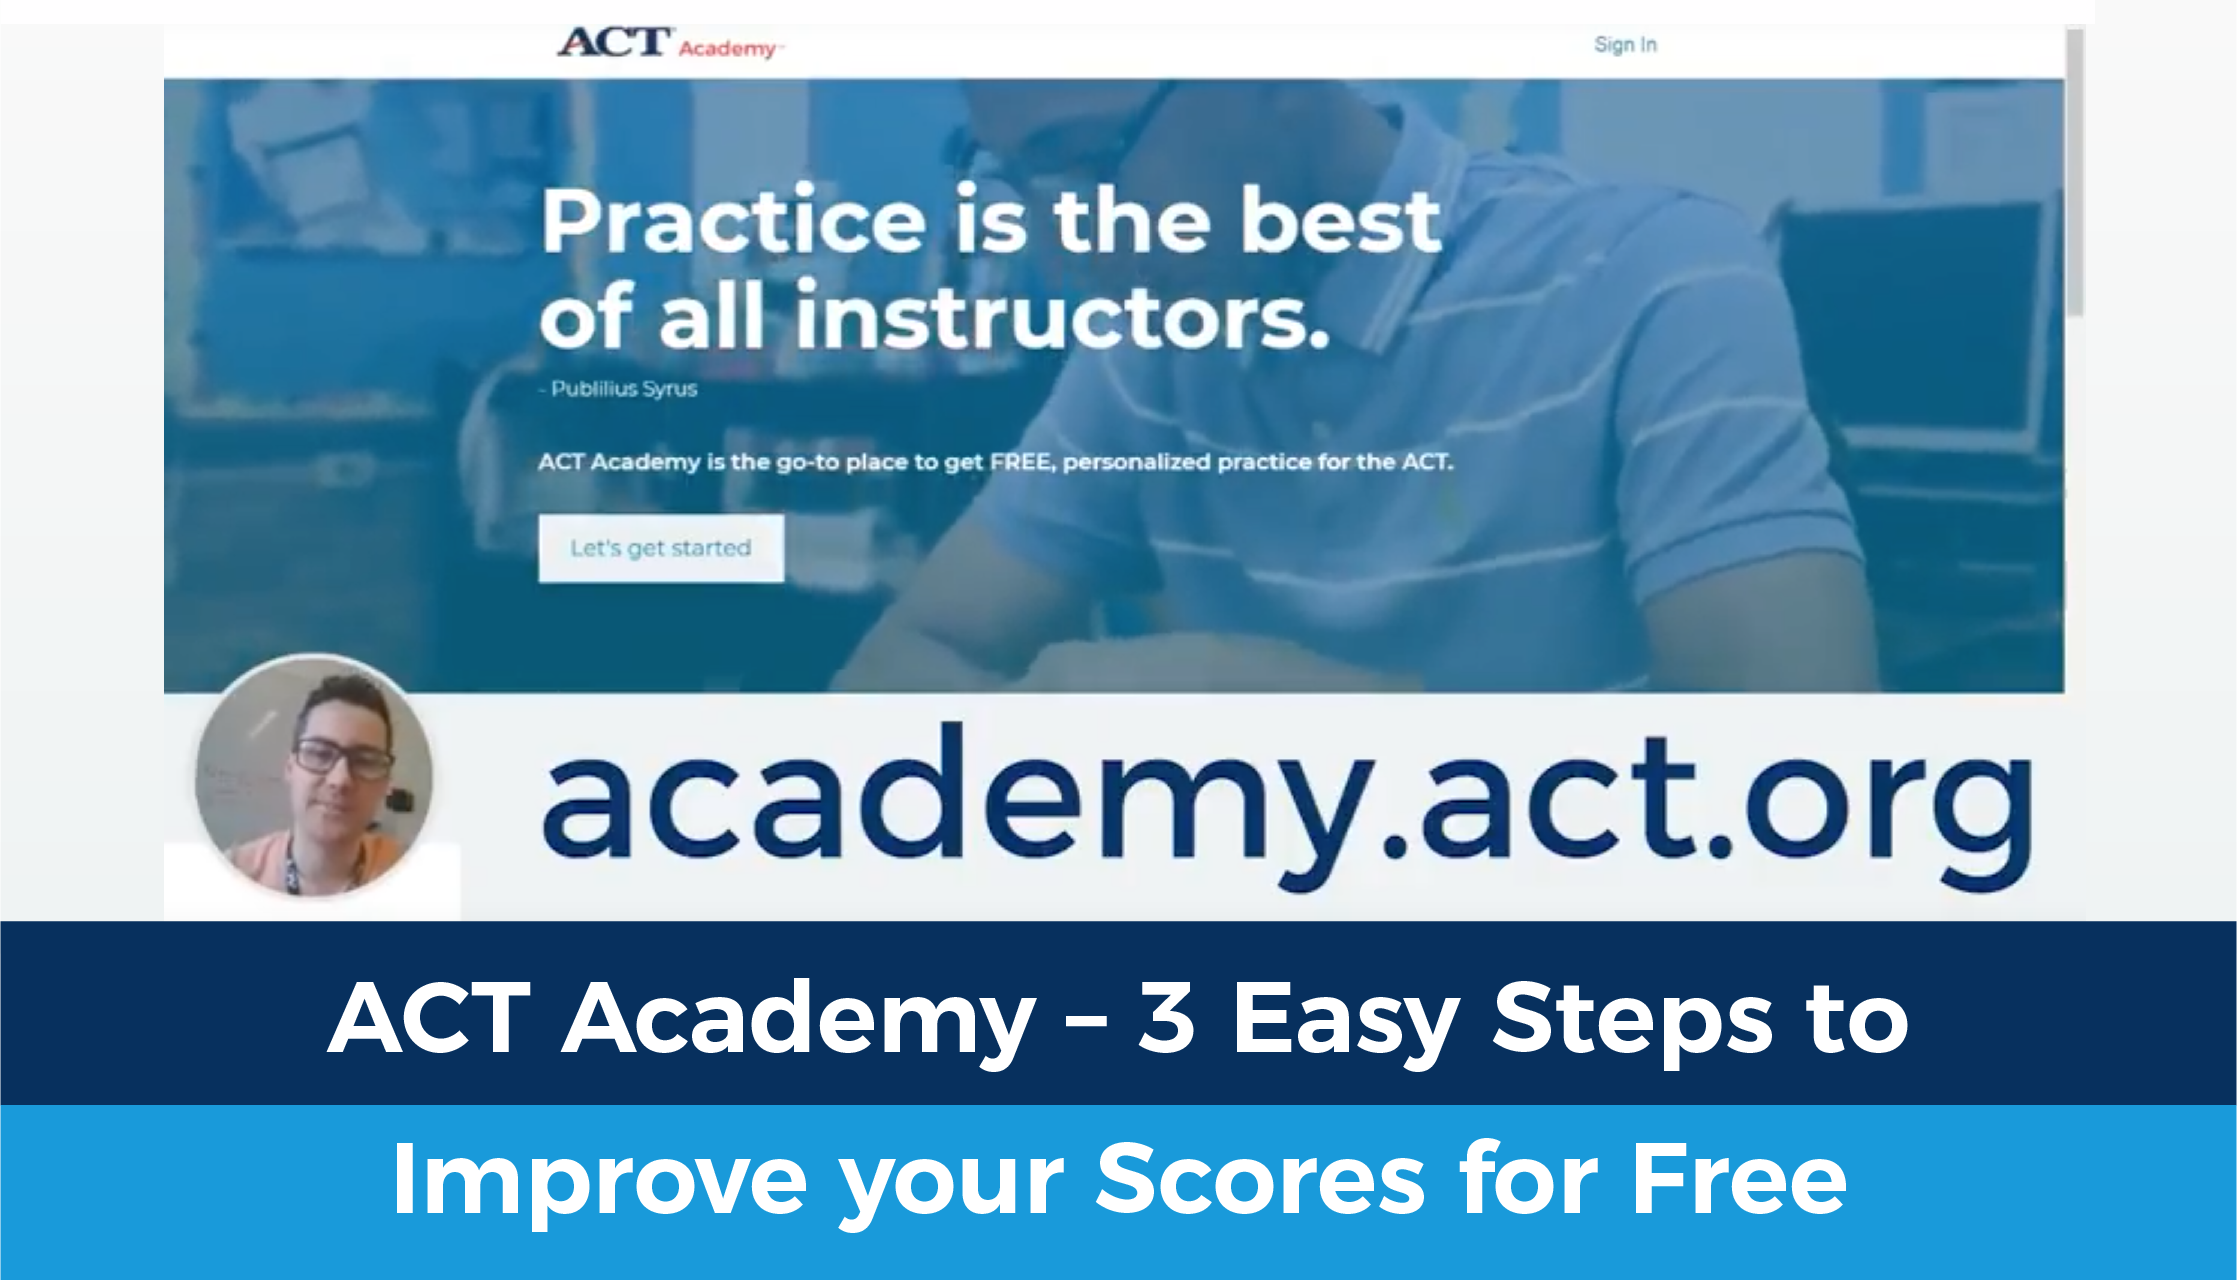 3 easy steps to improve your scores